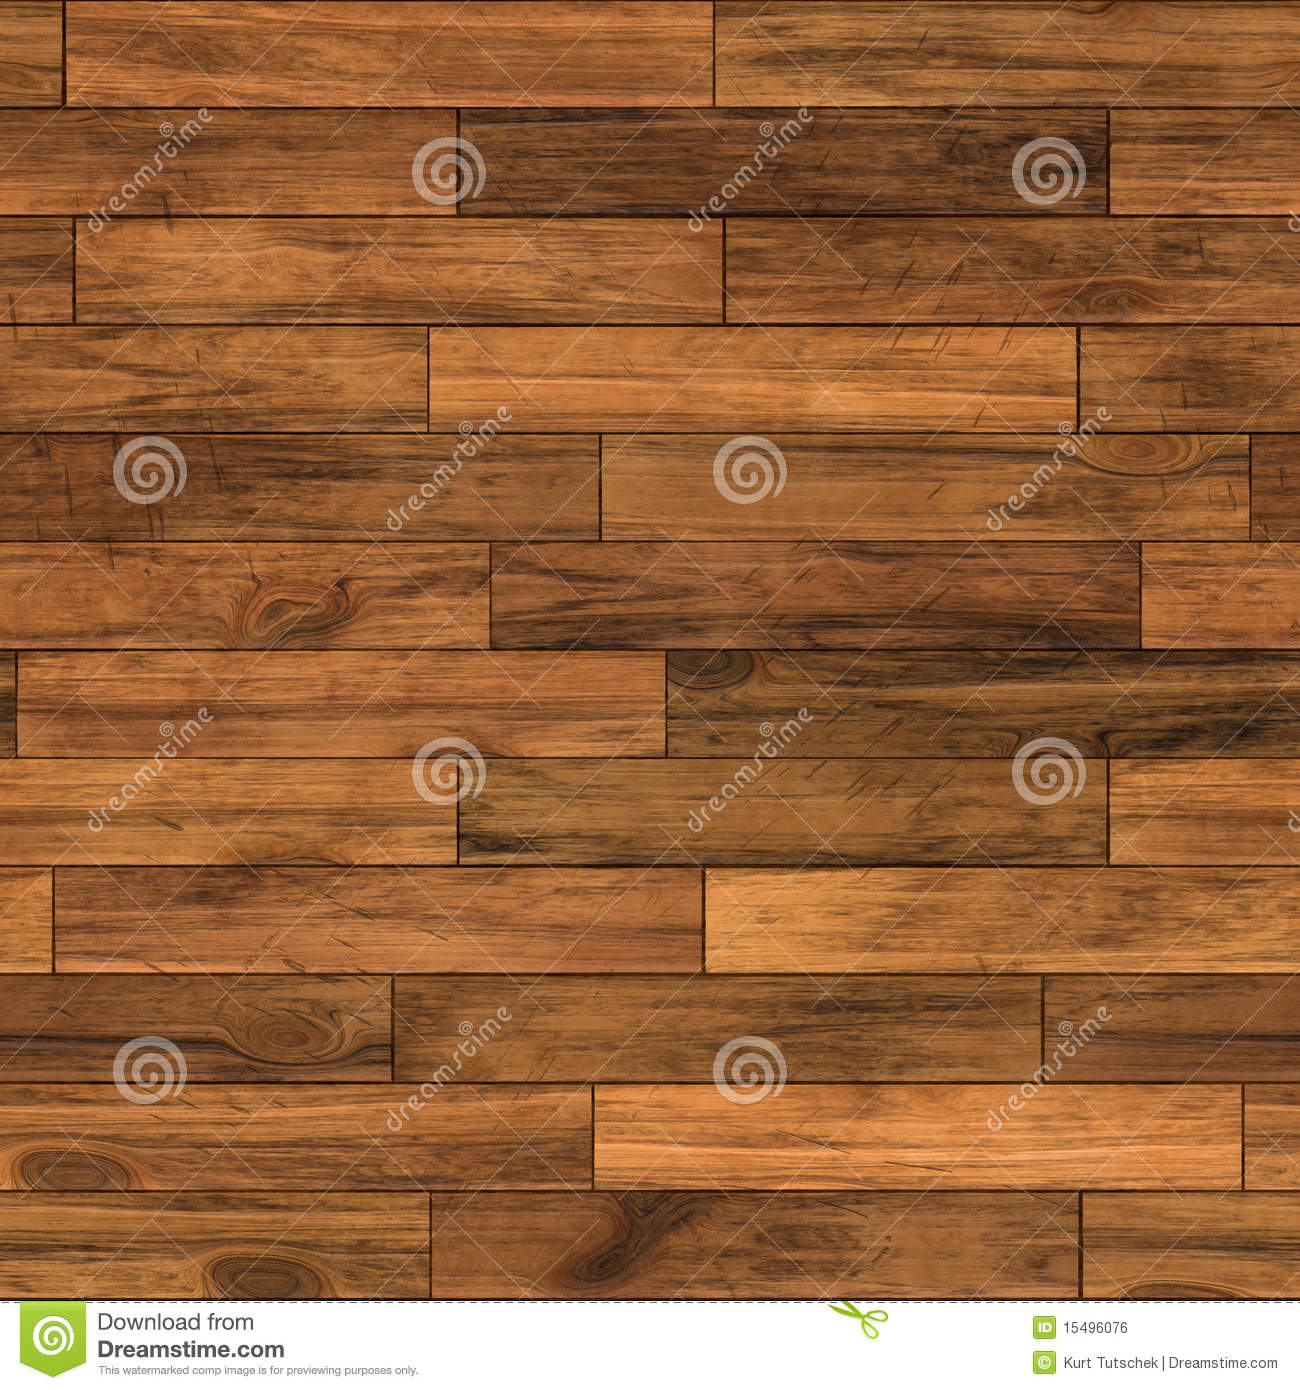 Download Seamless Parquet Floor Tile Stock Illustration